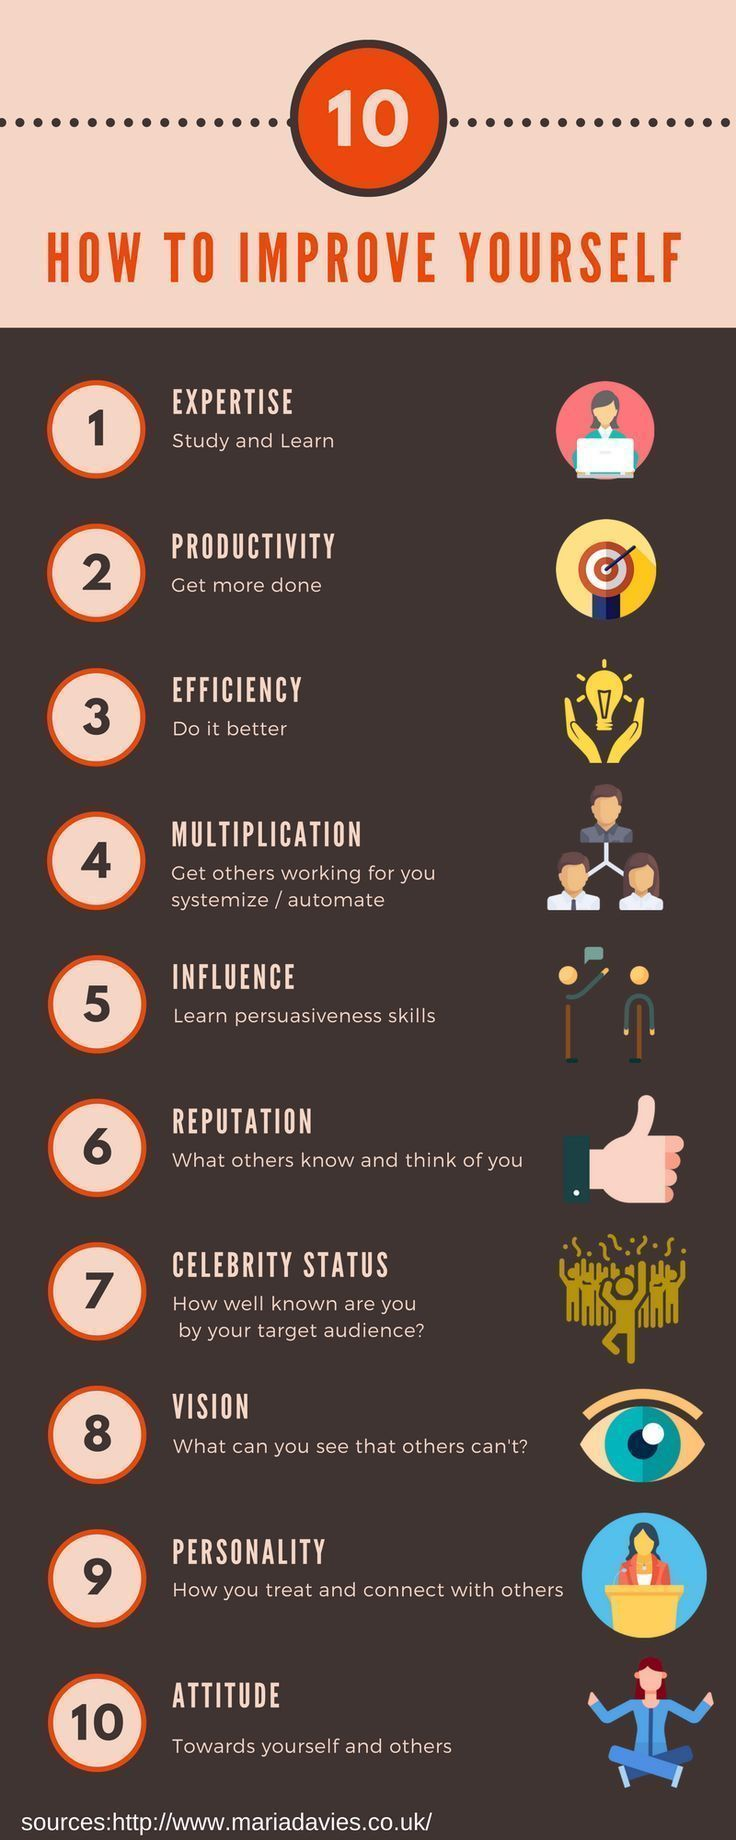 How to Improve Yourself Infographic in 2020 Personal